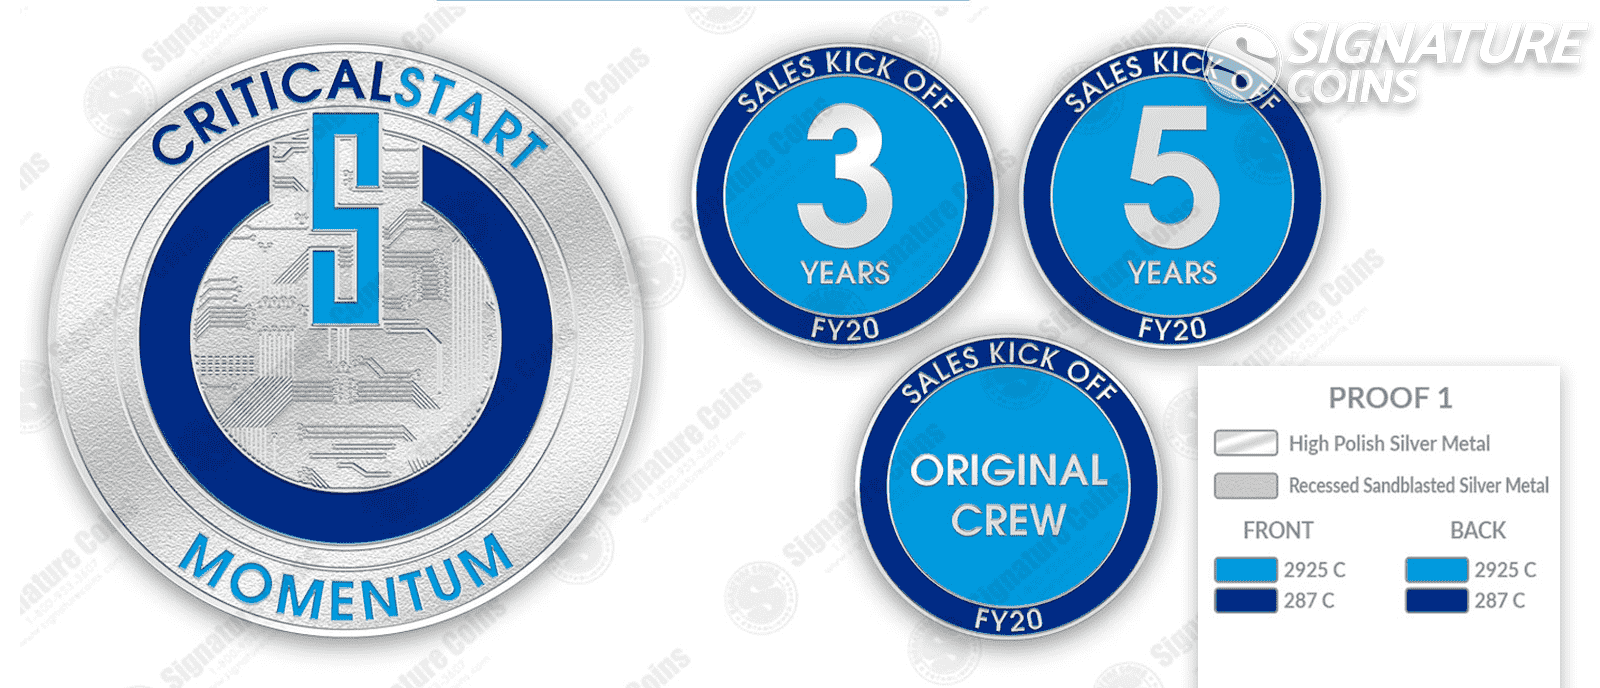 Years of Service Page challenge coins by signature coins